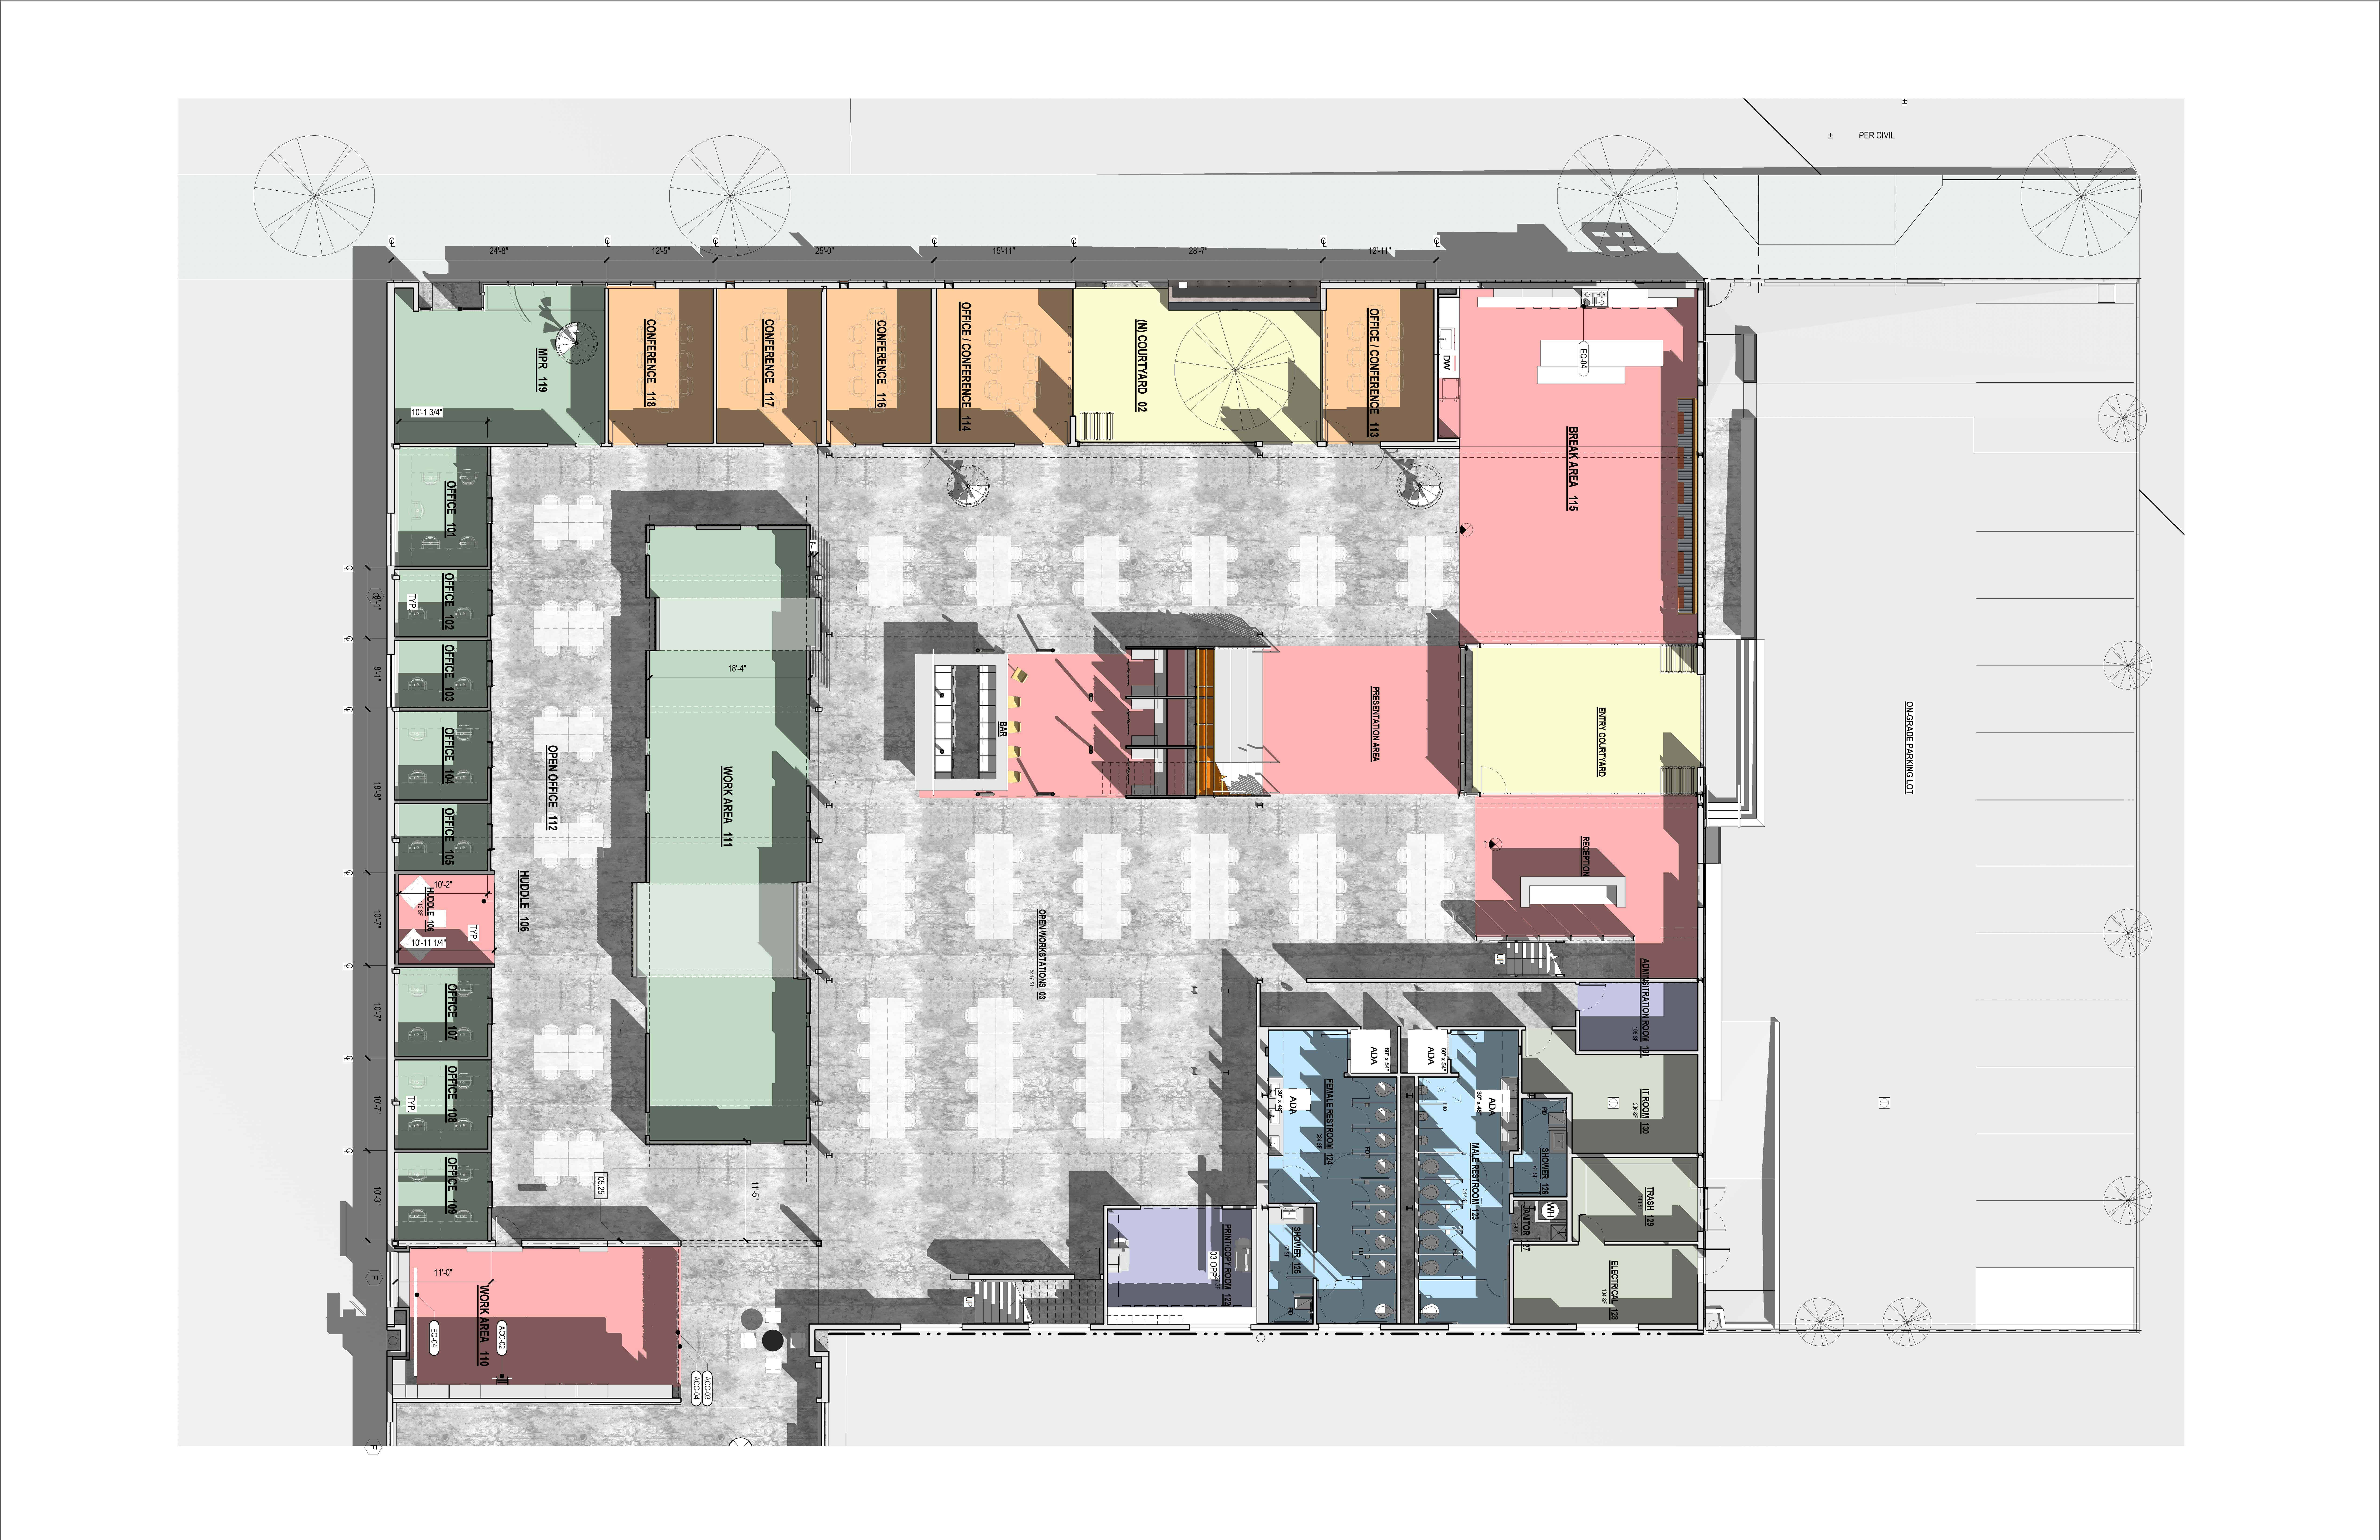 1422_720 N. Cahuenga_150129 1422_Cahuenga_Floor Plan_01 – Color Diagram